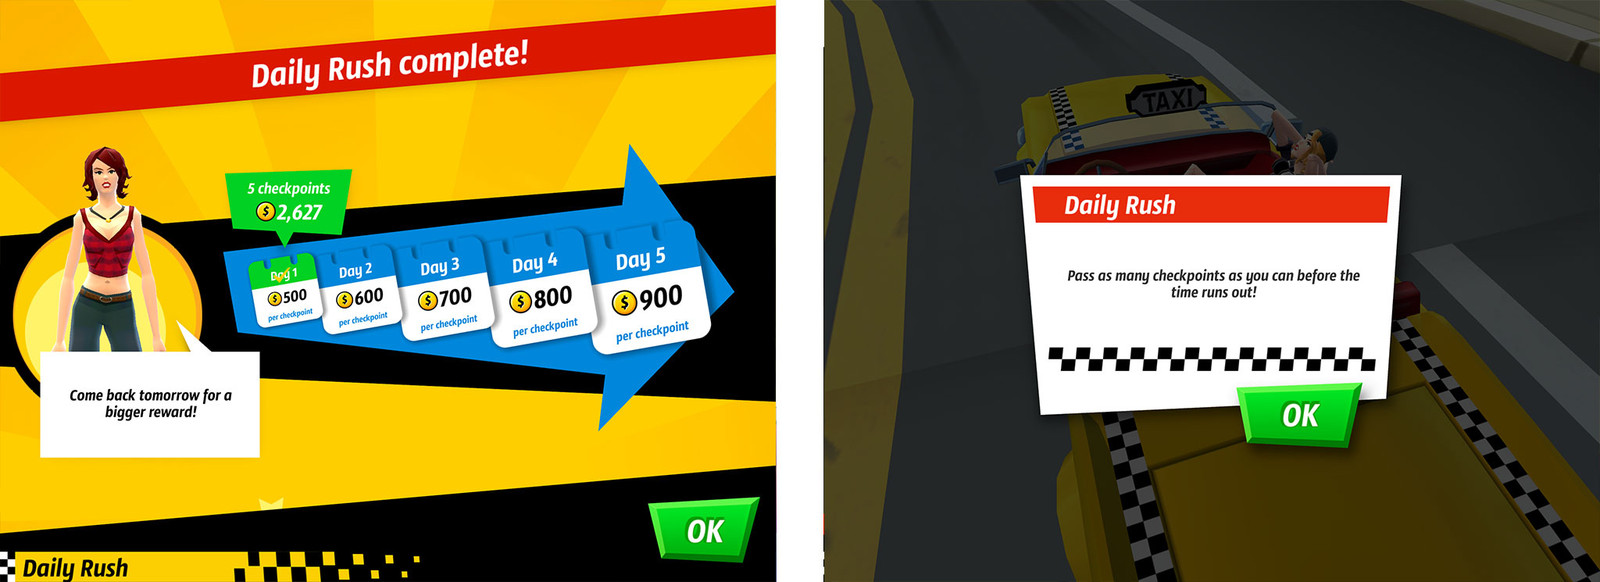 Crazy Taxi: City Rush: Top 10 tips, hints, and cheats you need to know!